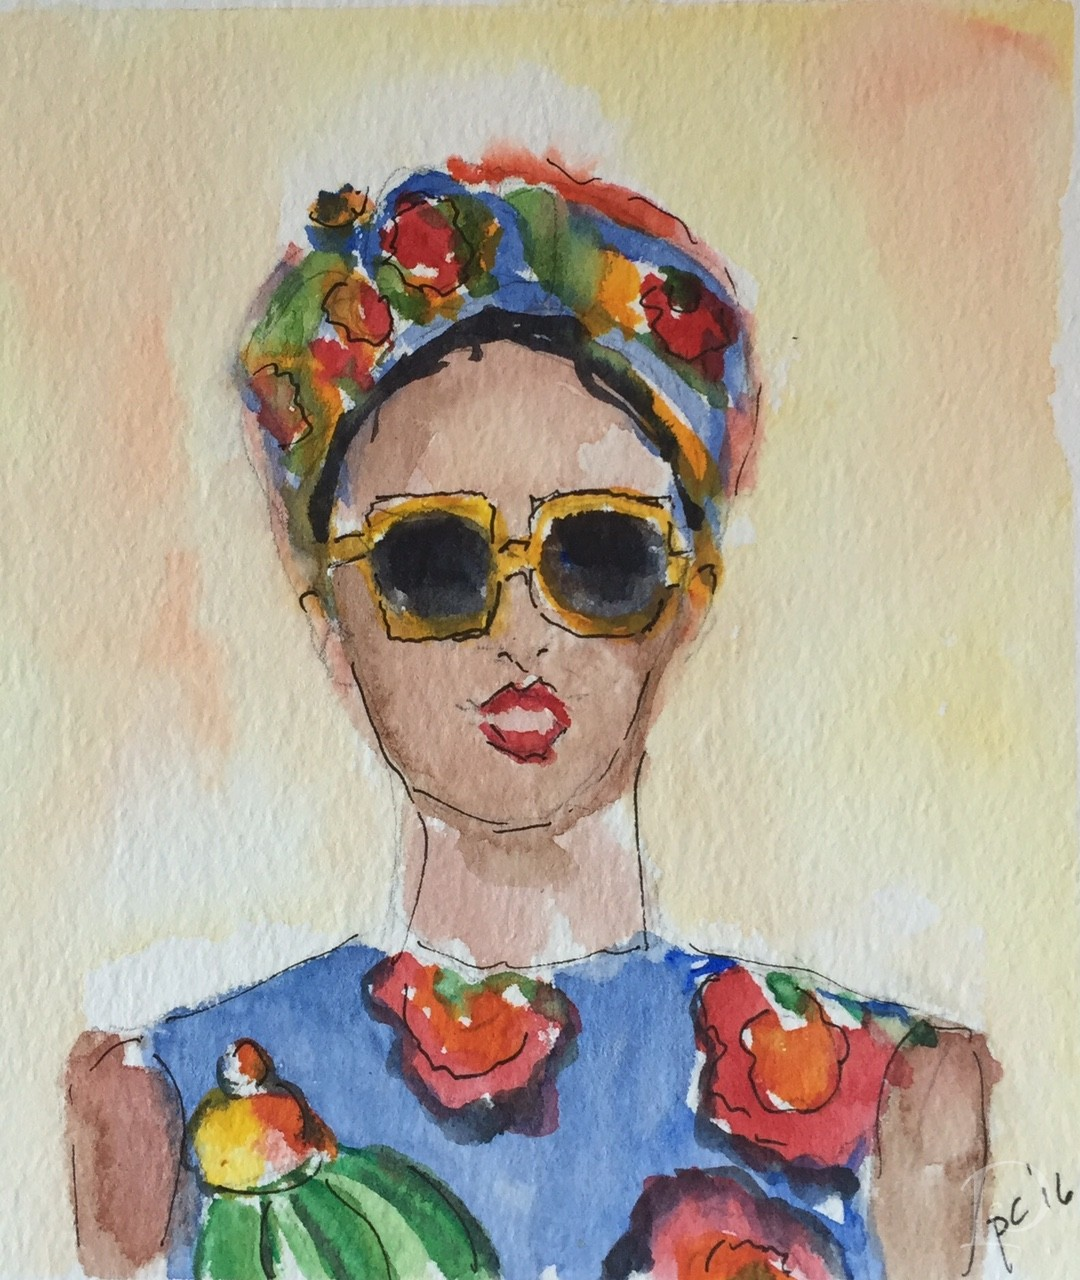 Dolce watercolor by Pamela Copeman